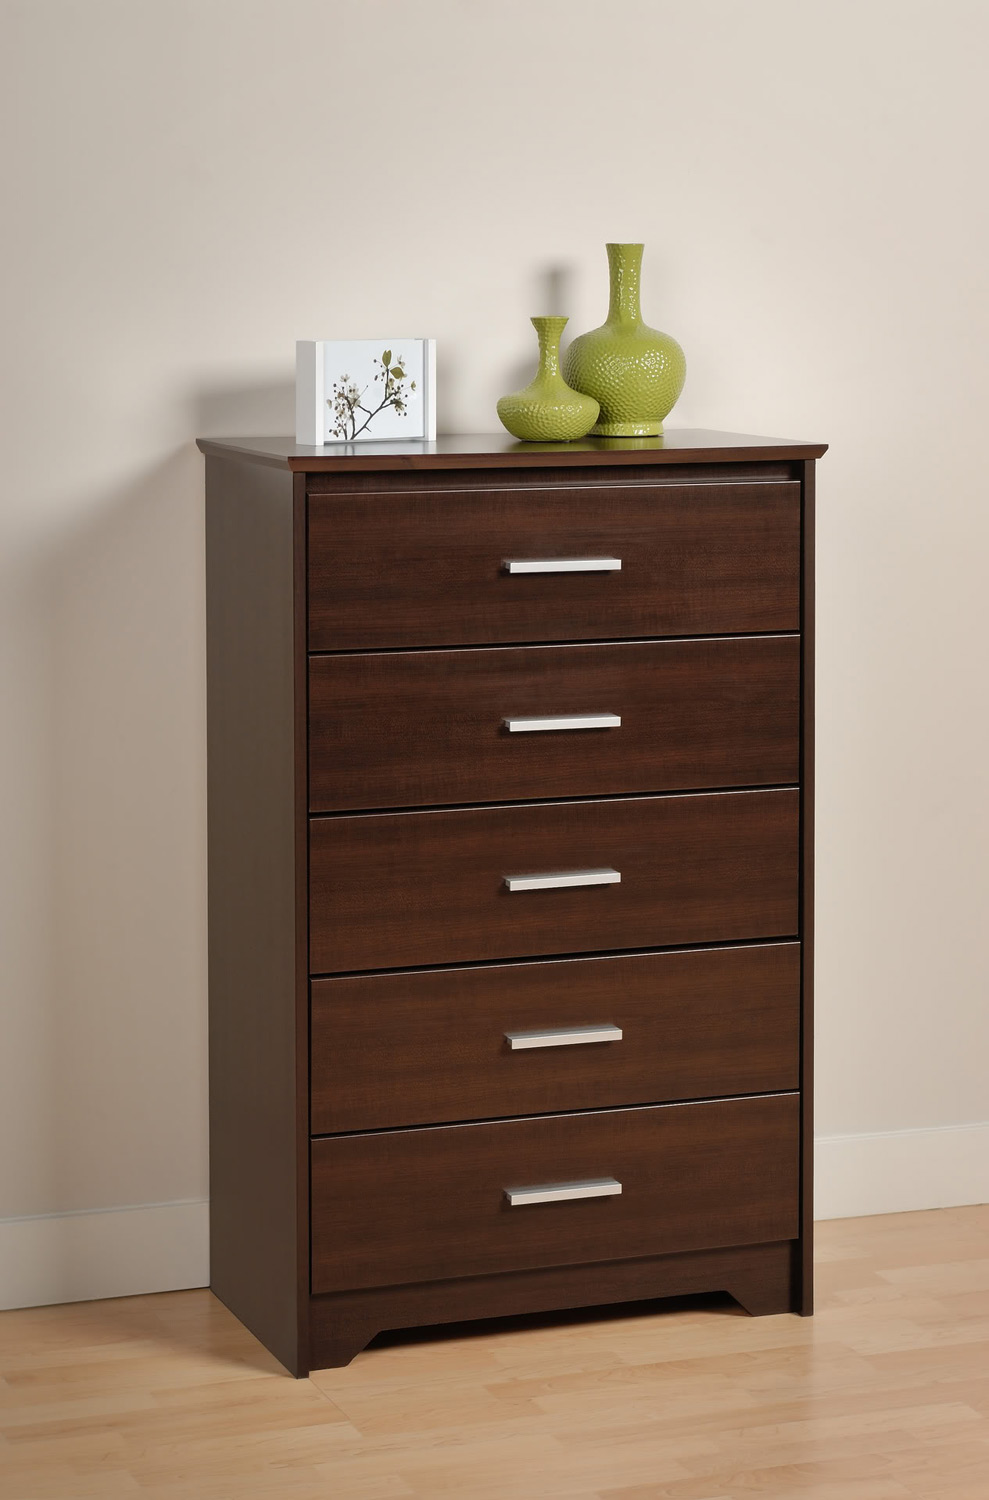 Prepac Coal Harbor 5 Drawer Chest - Espresso